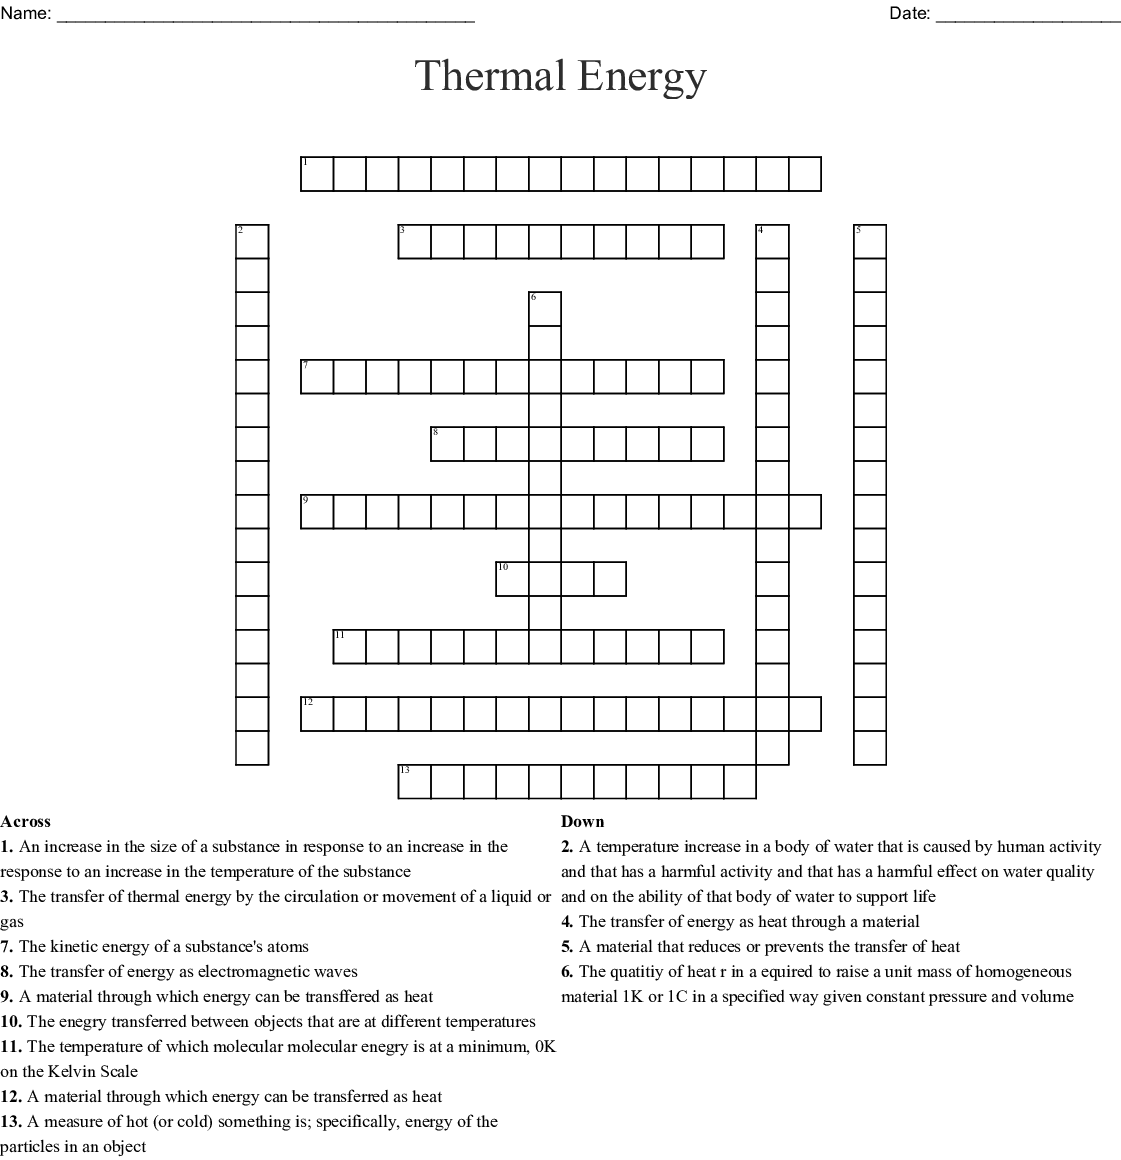 Chapter 9 energy vocabulary crossword - WordMint